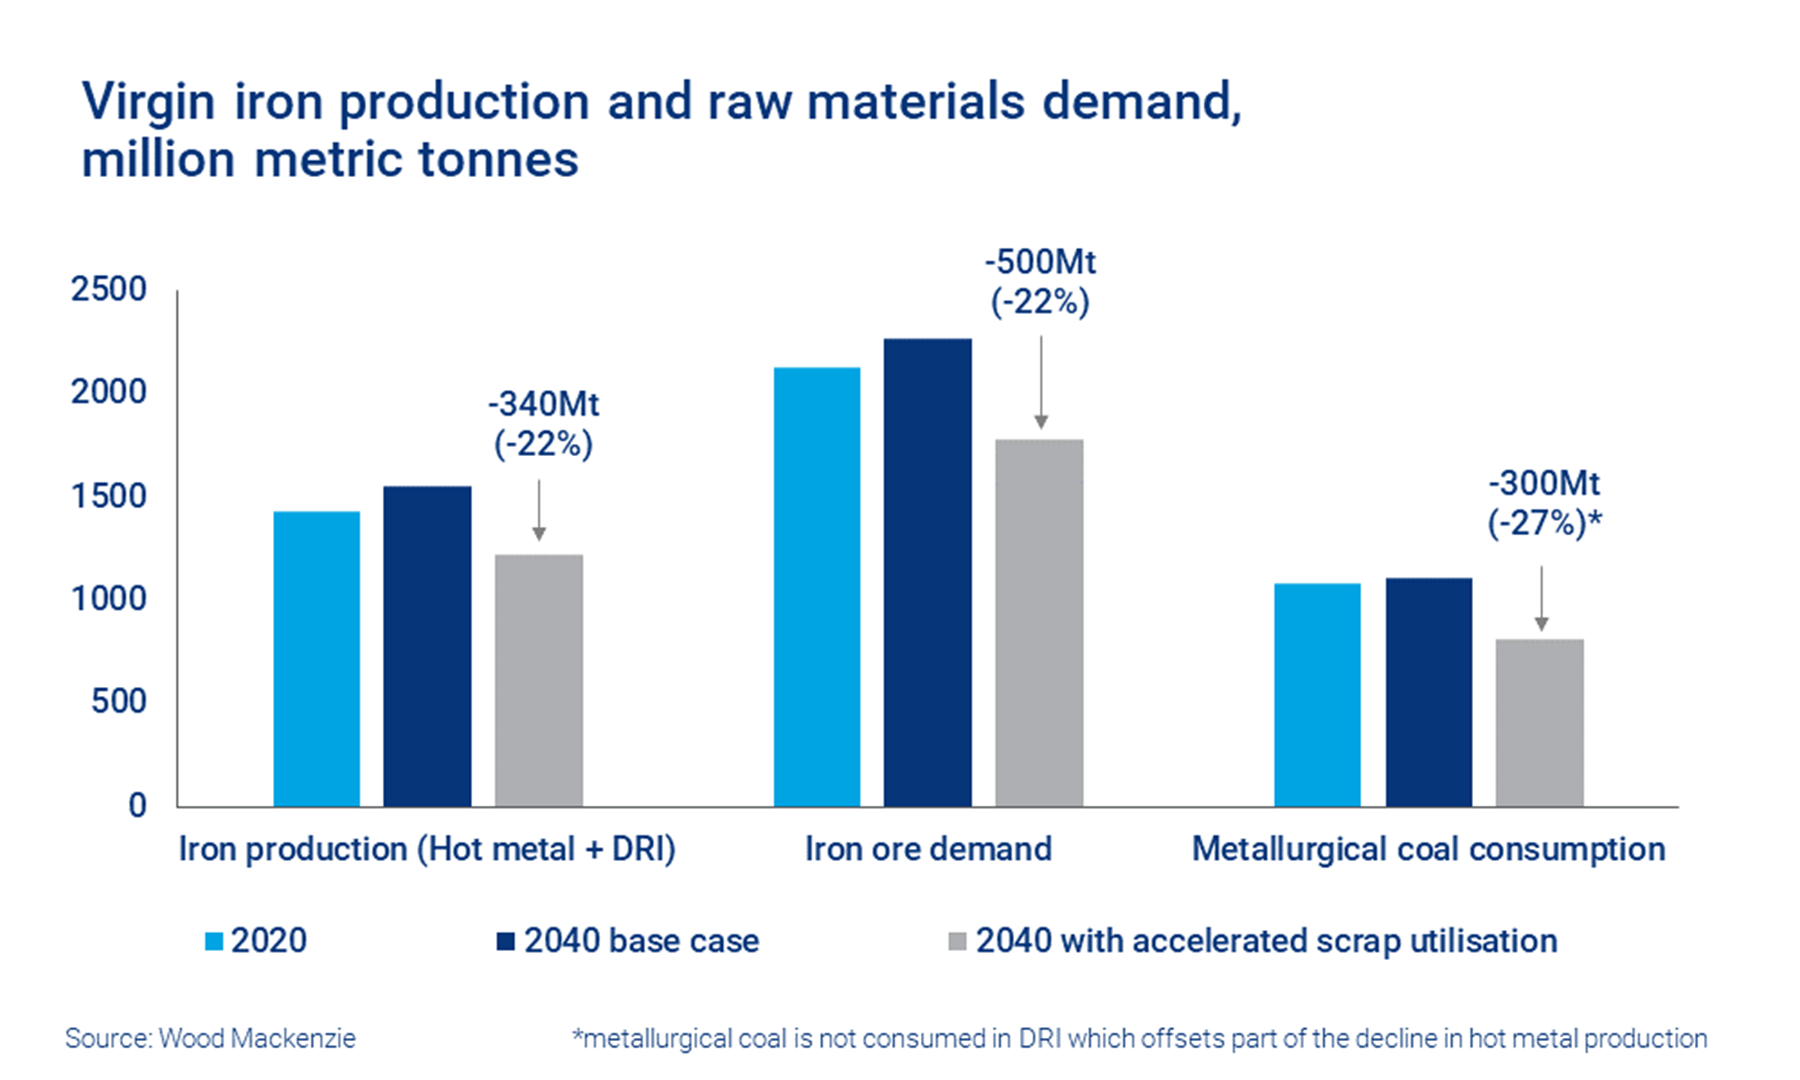 Chart shows virgin iron production and raw materials demand, million metric tonnes